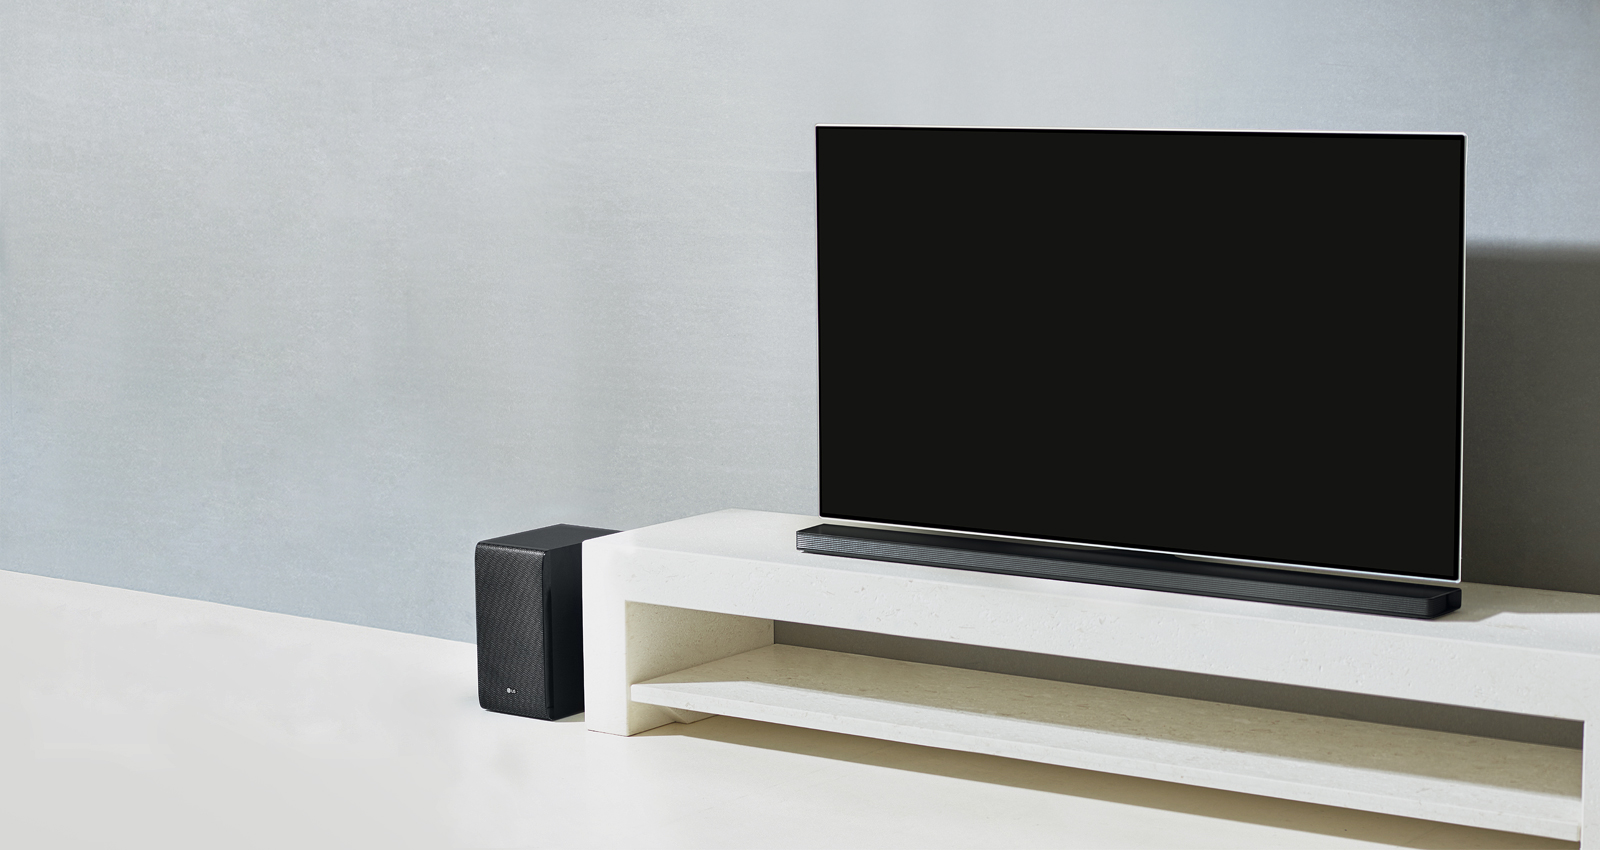 High-Tech - Fernseher, Video & Heimkino - Soundbar - SOUND BAR SJ8 ...